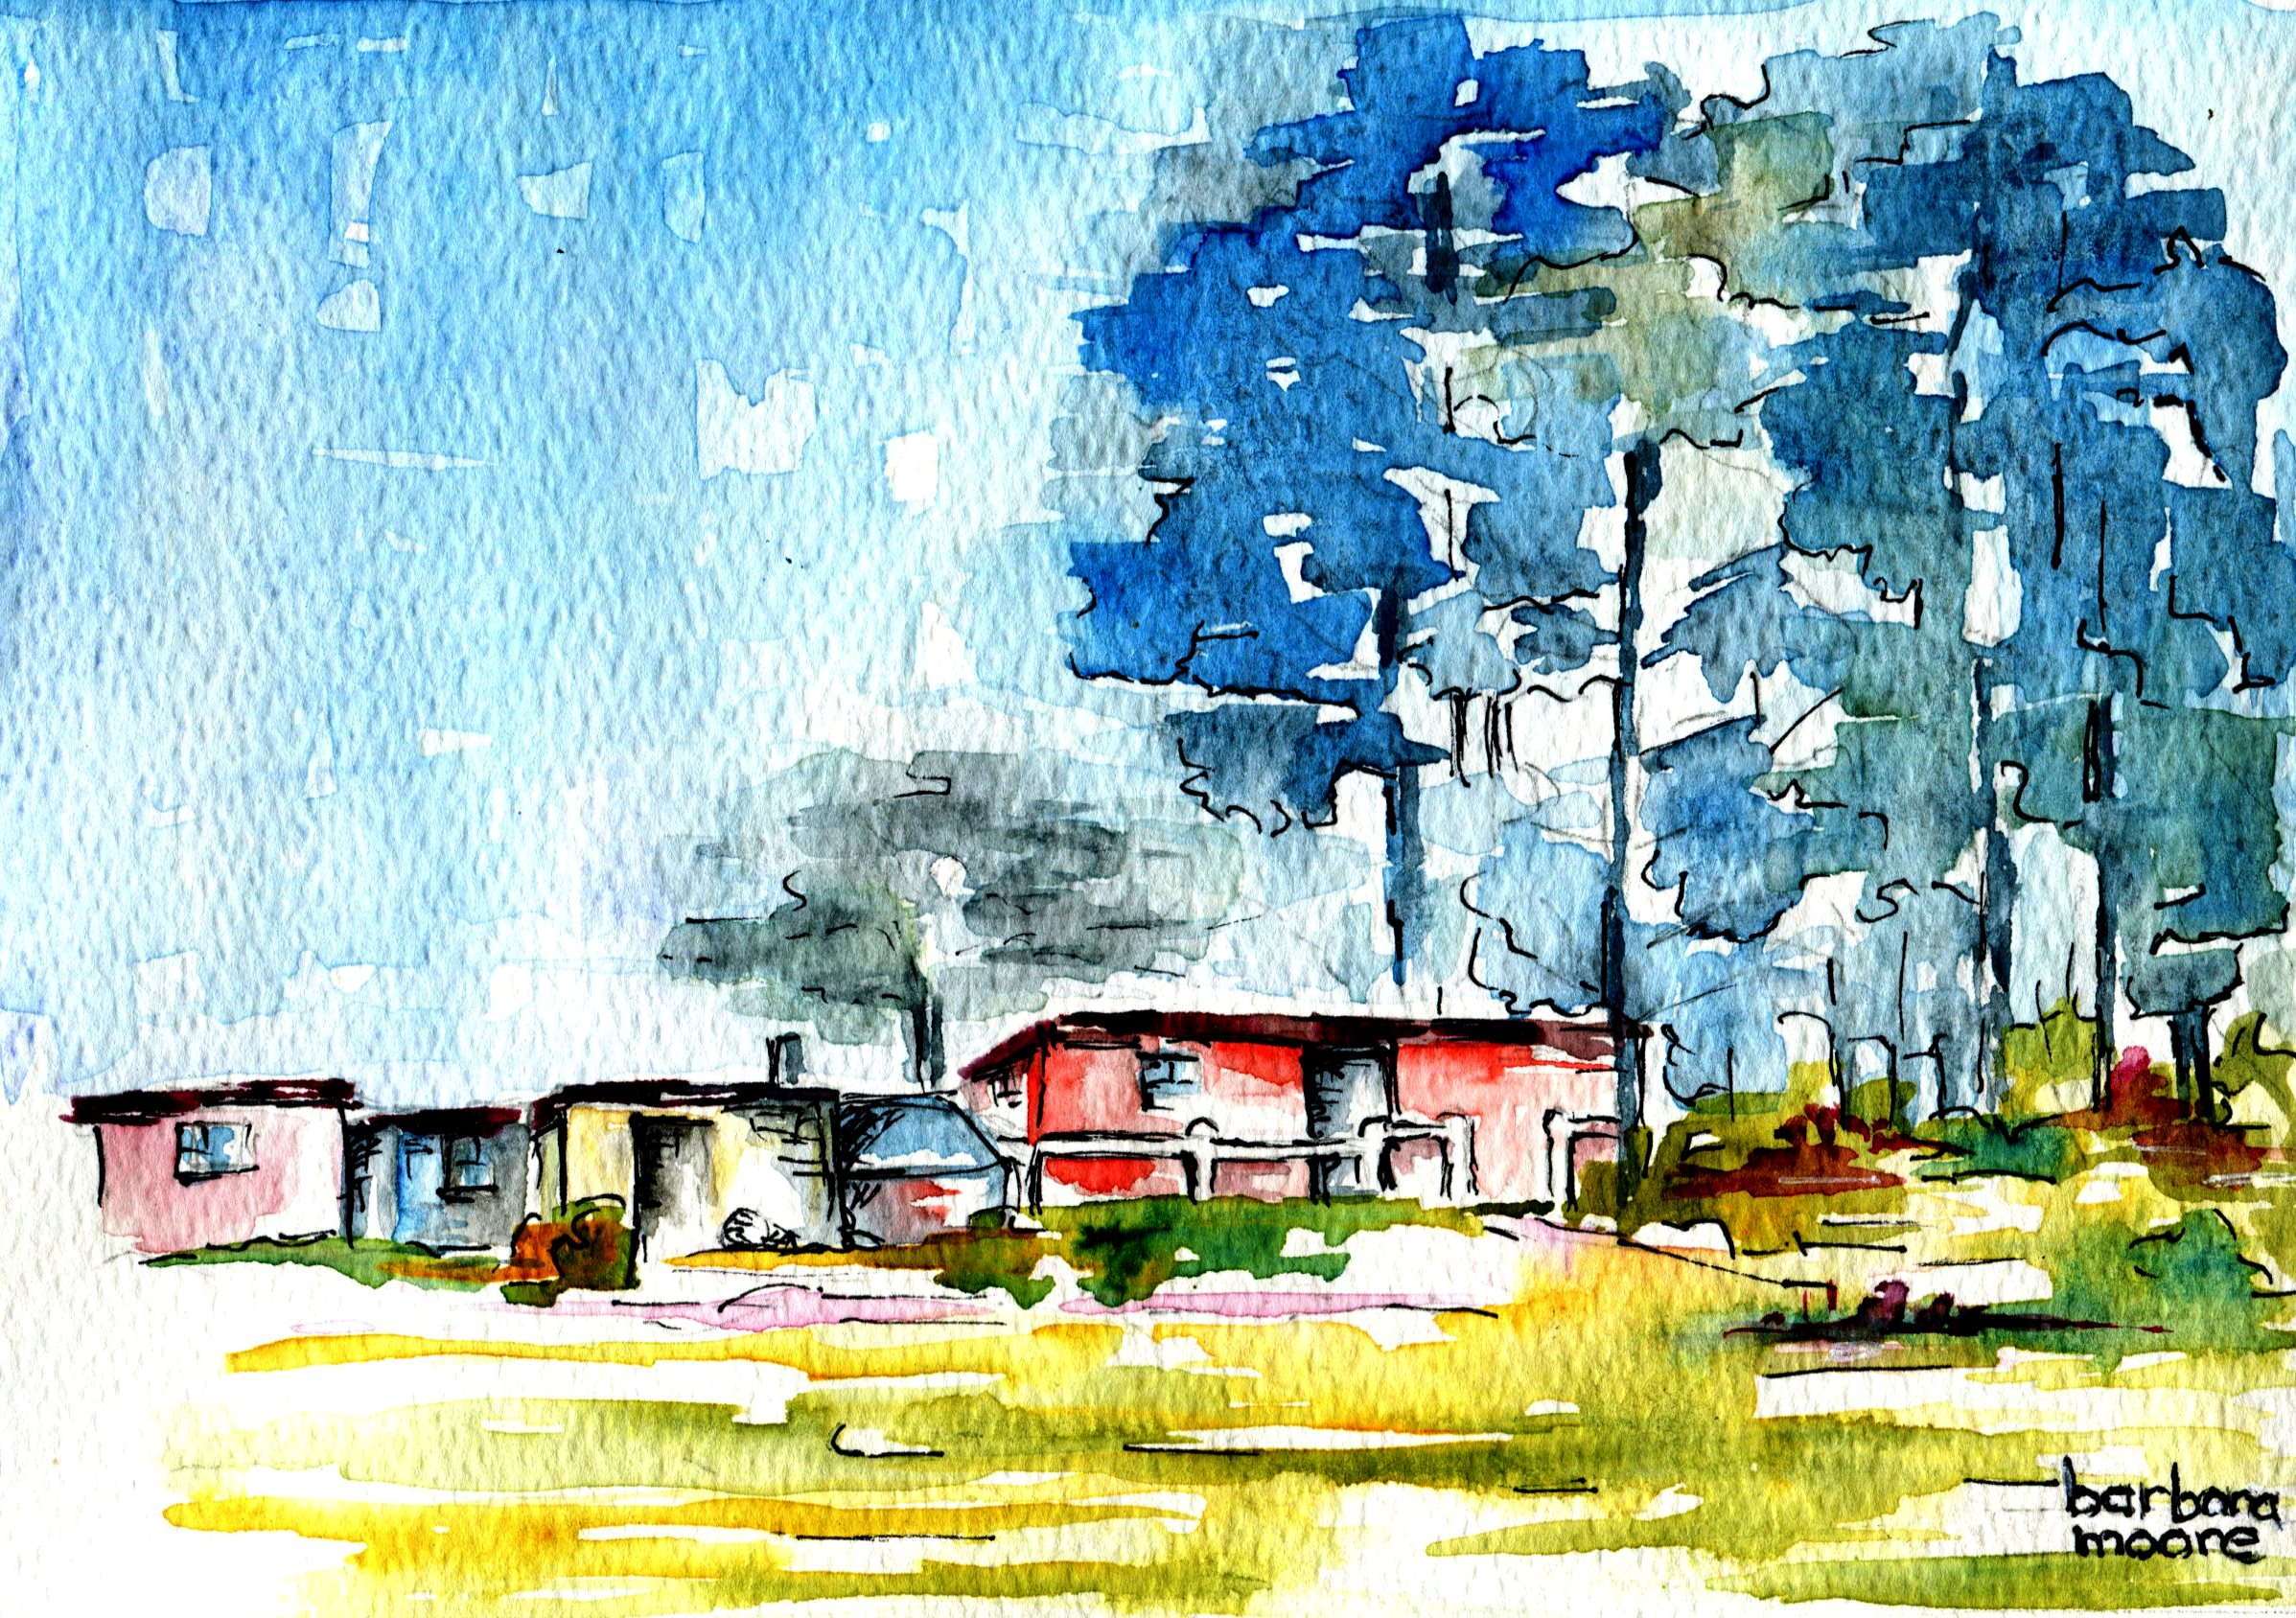 16B BARBARA MOORE, HOME, WATERCOLOUR ON PAPER